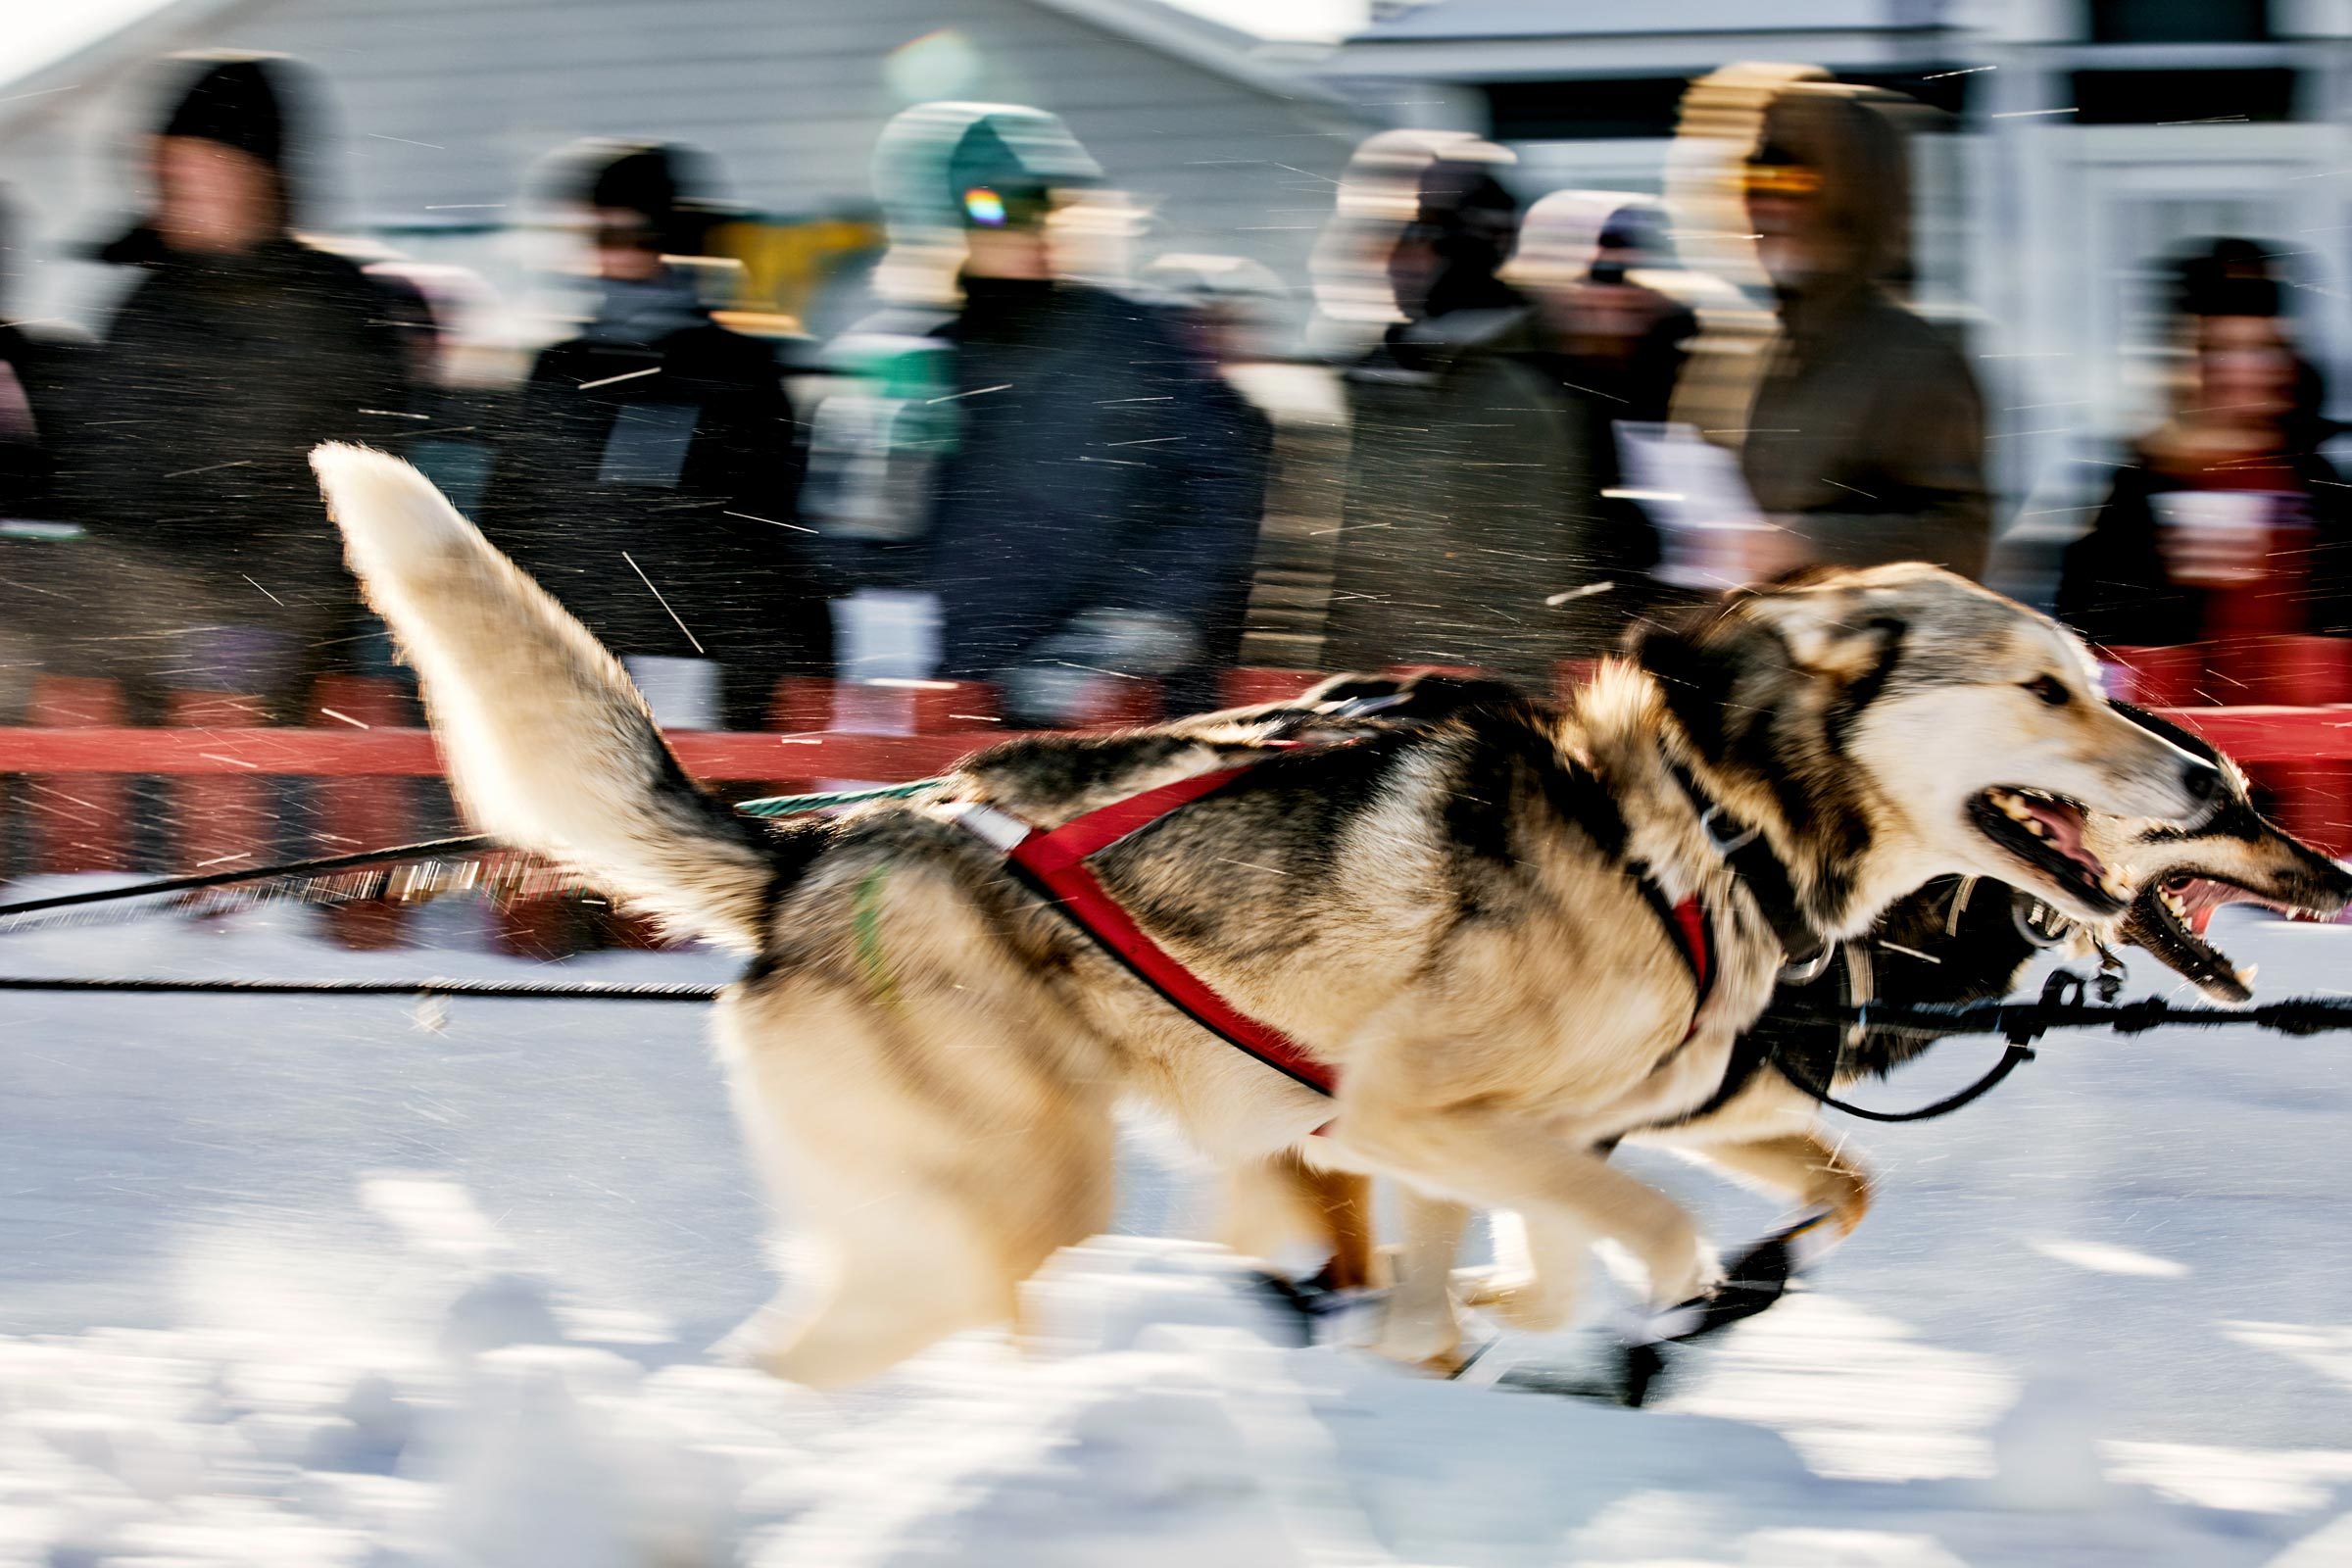 M_WilsonCan_AM-Dog-Sled00018